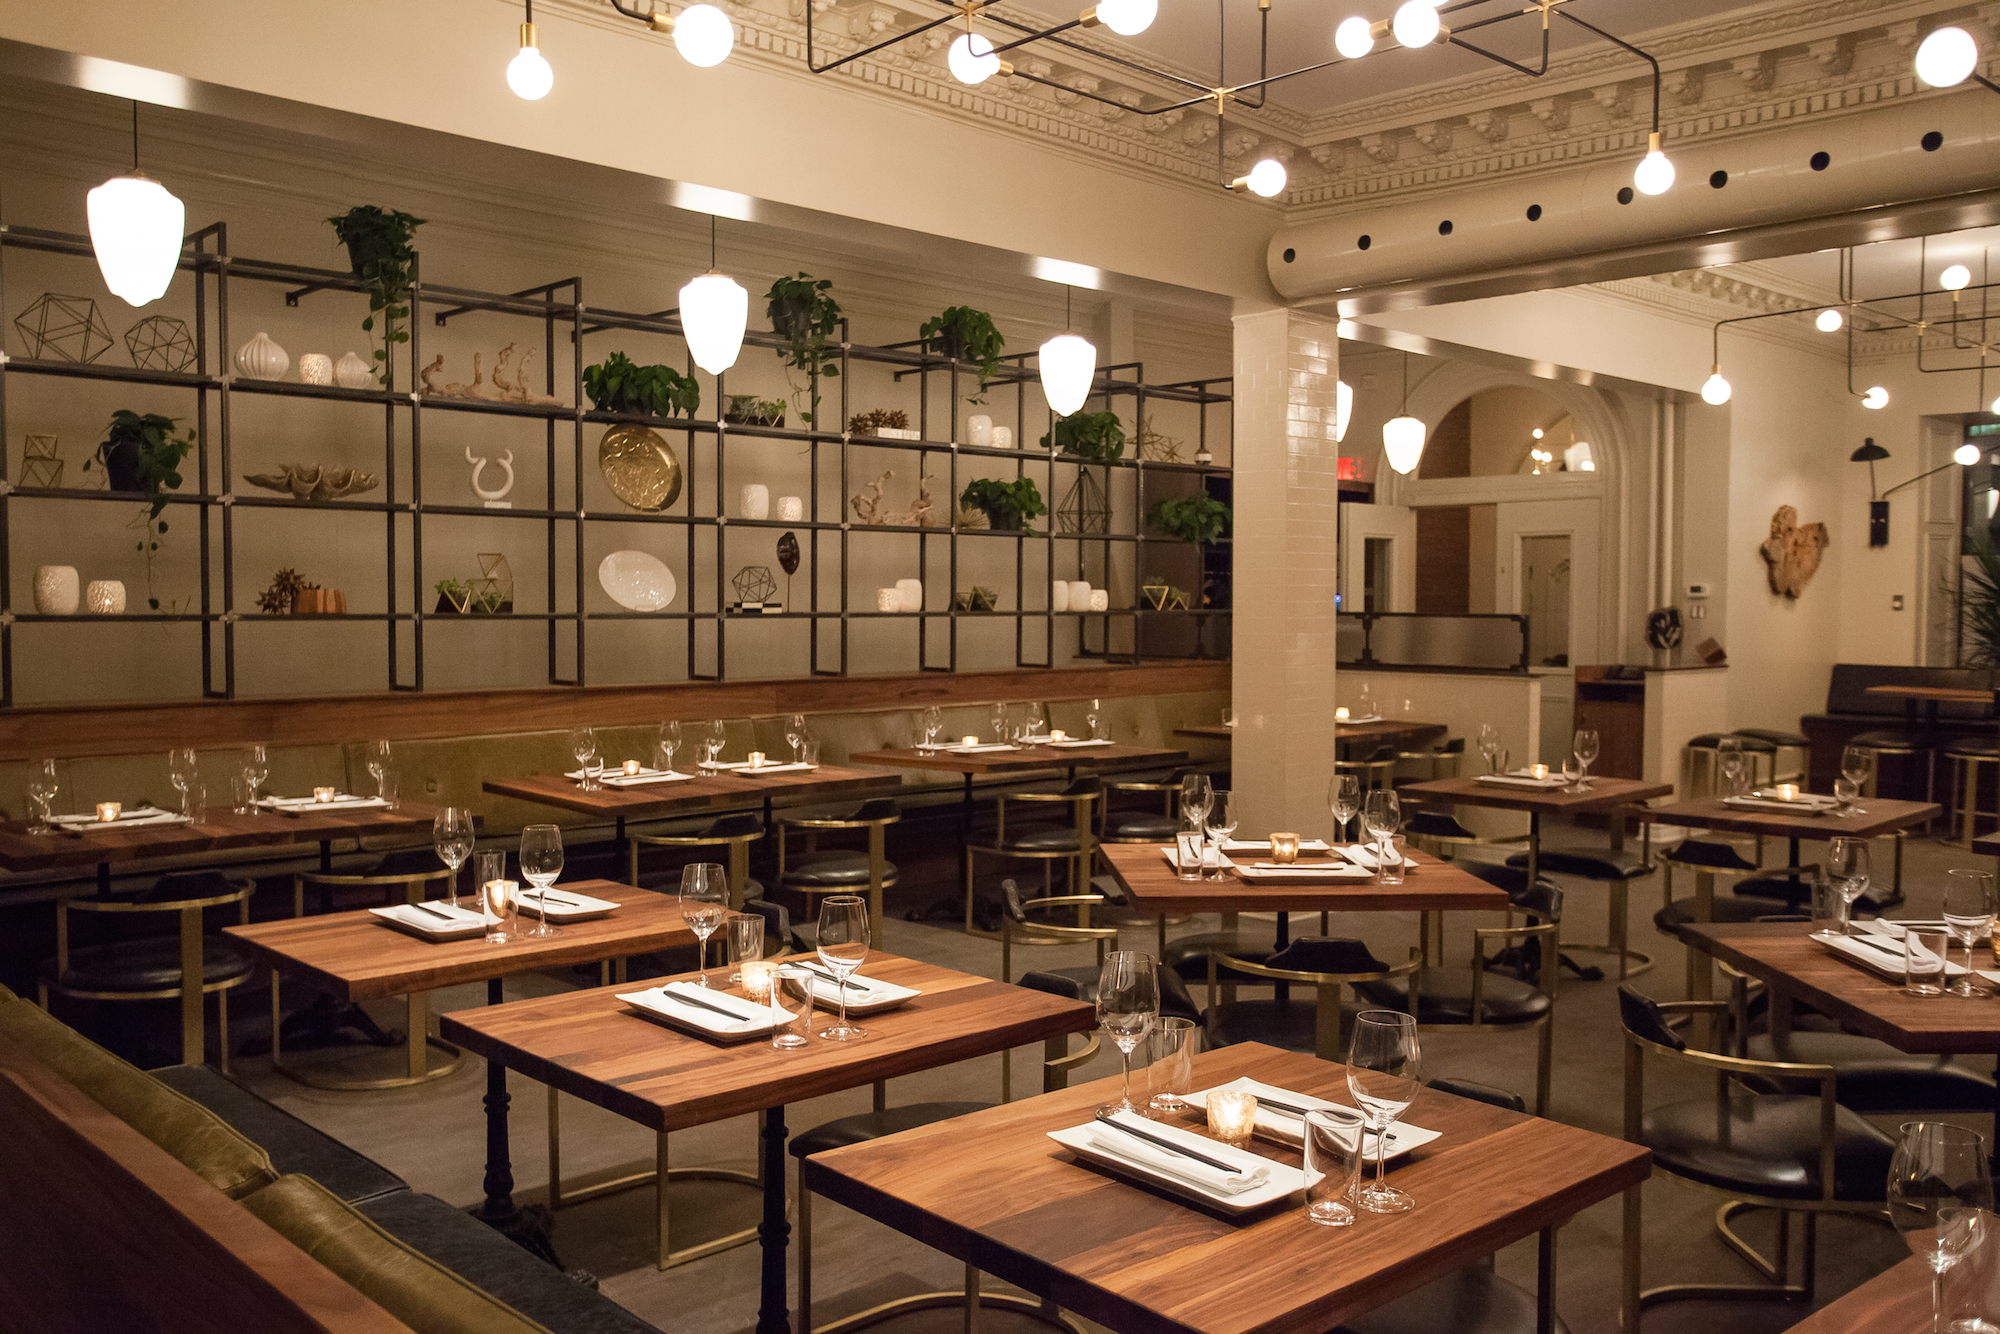 Jatoba wants to jolt Downtown business lunches